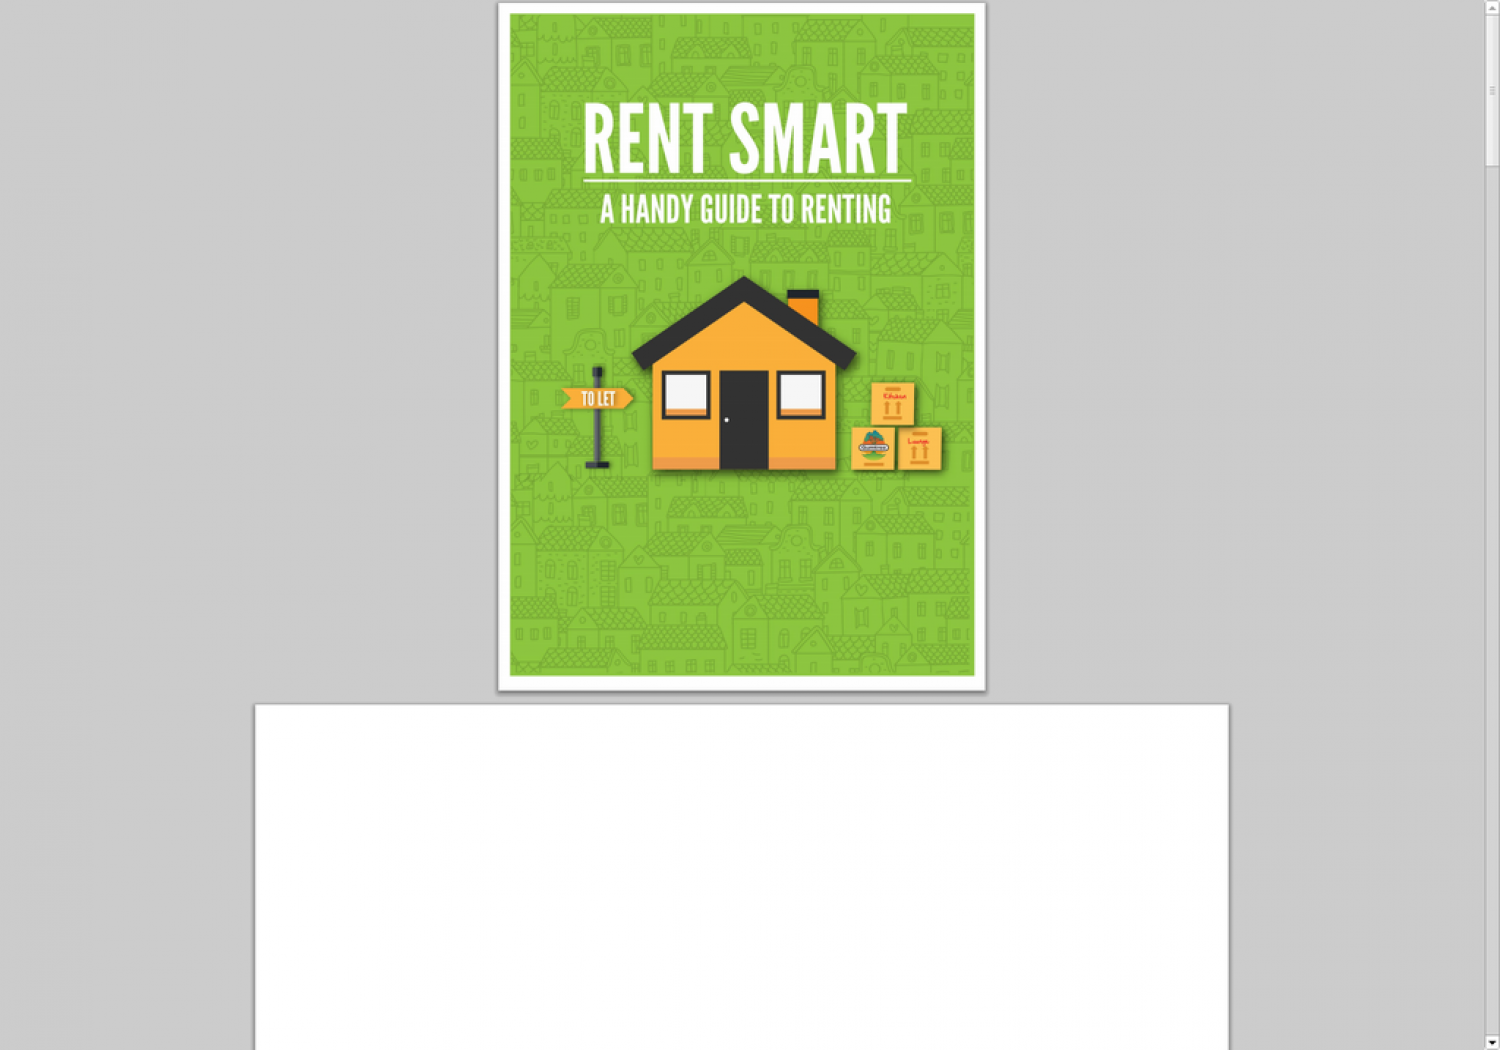 Rent smart - a handy guide to renting  Infographic